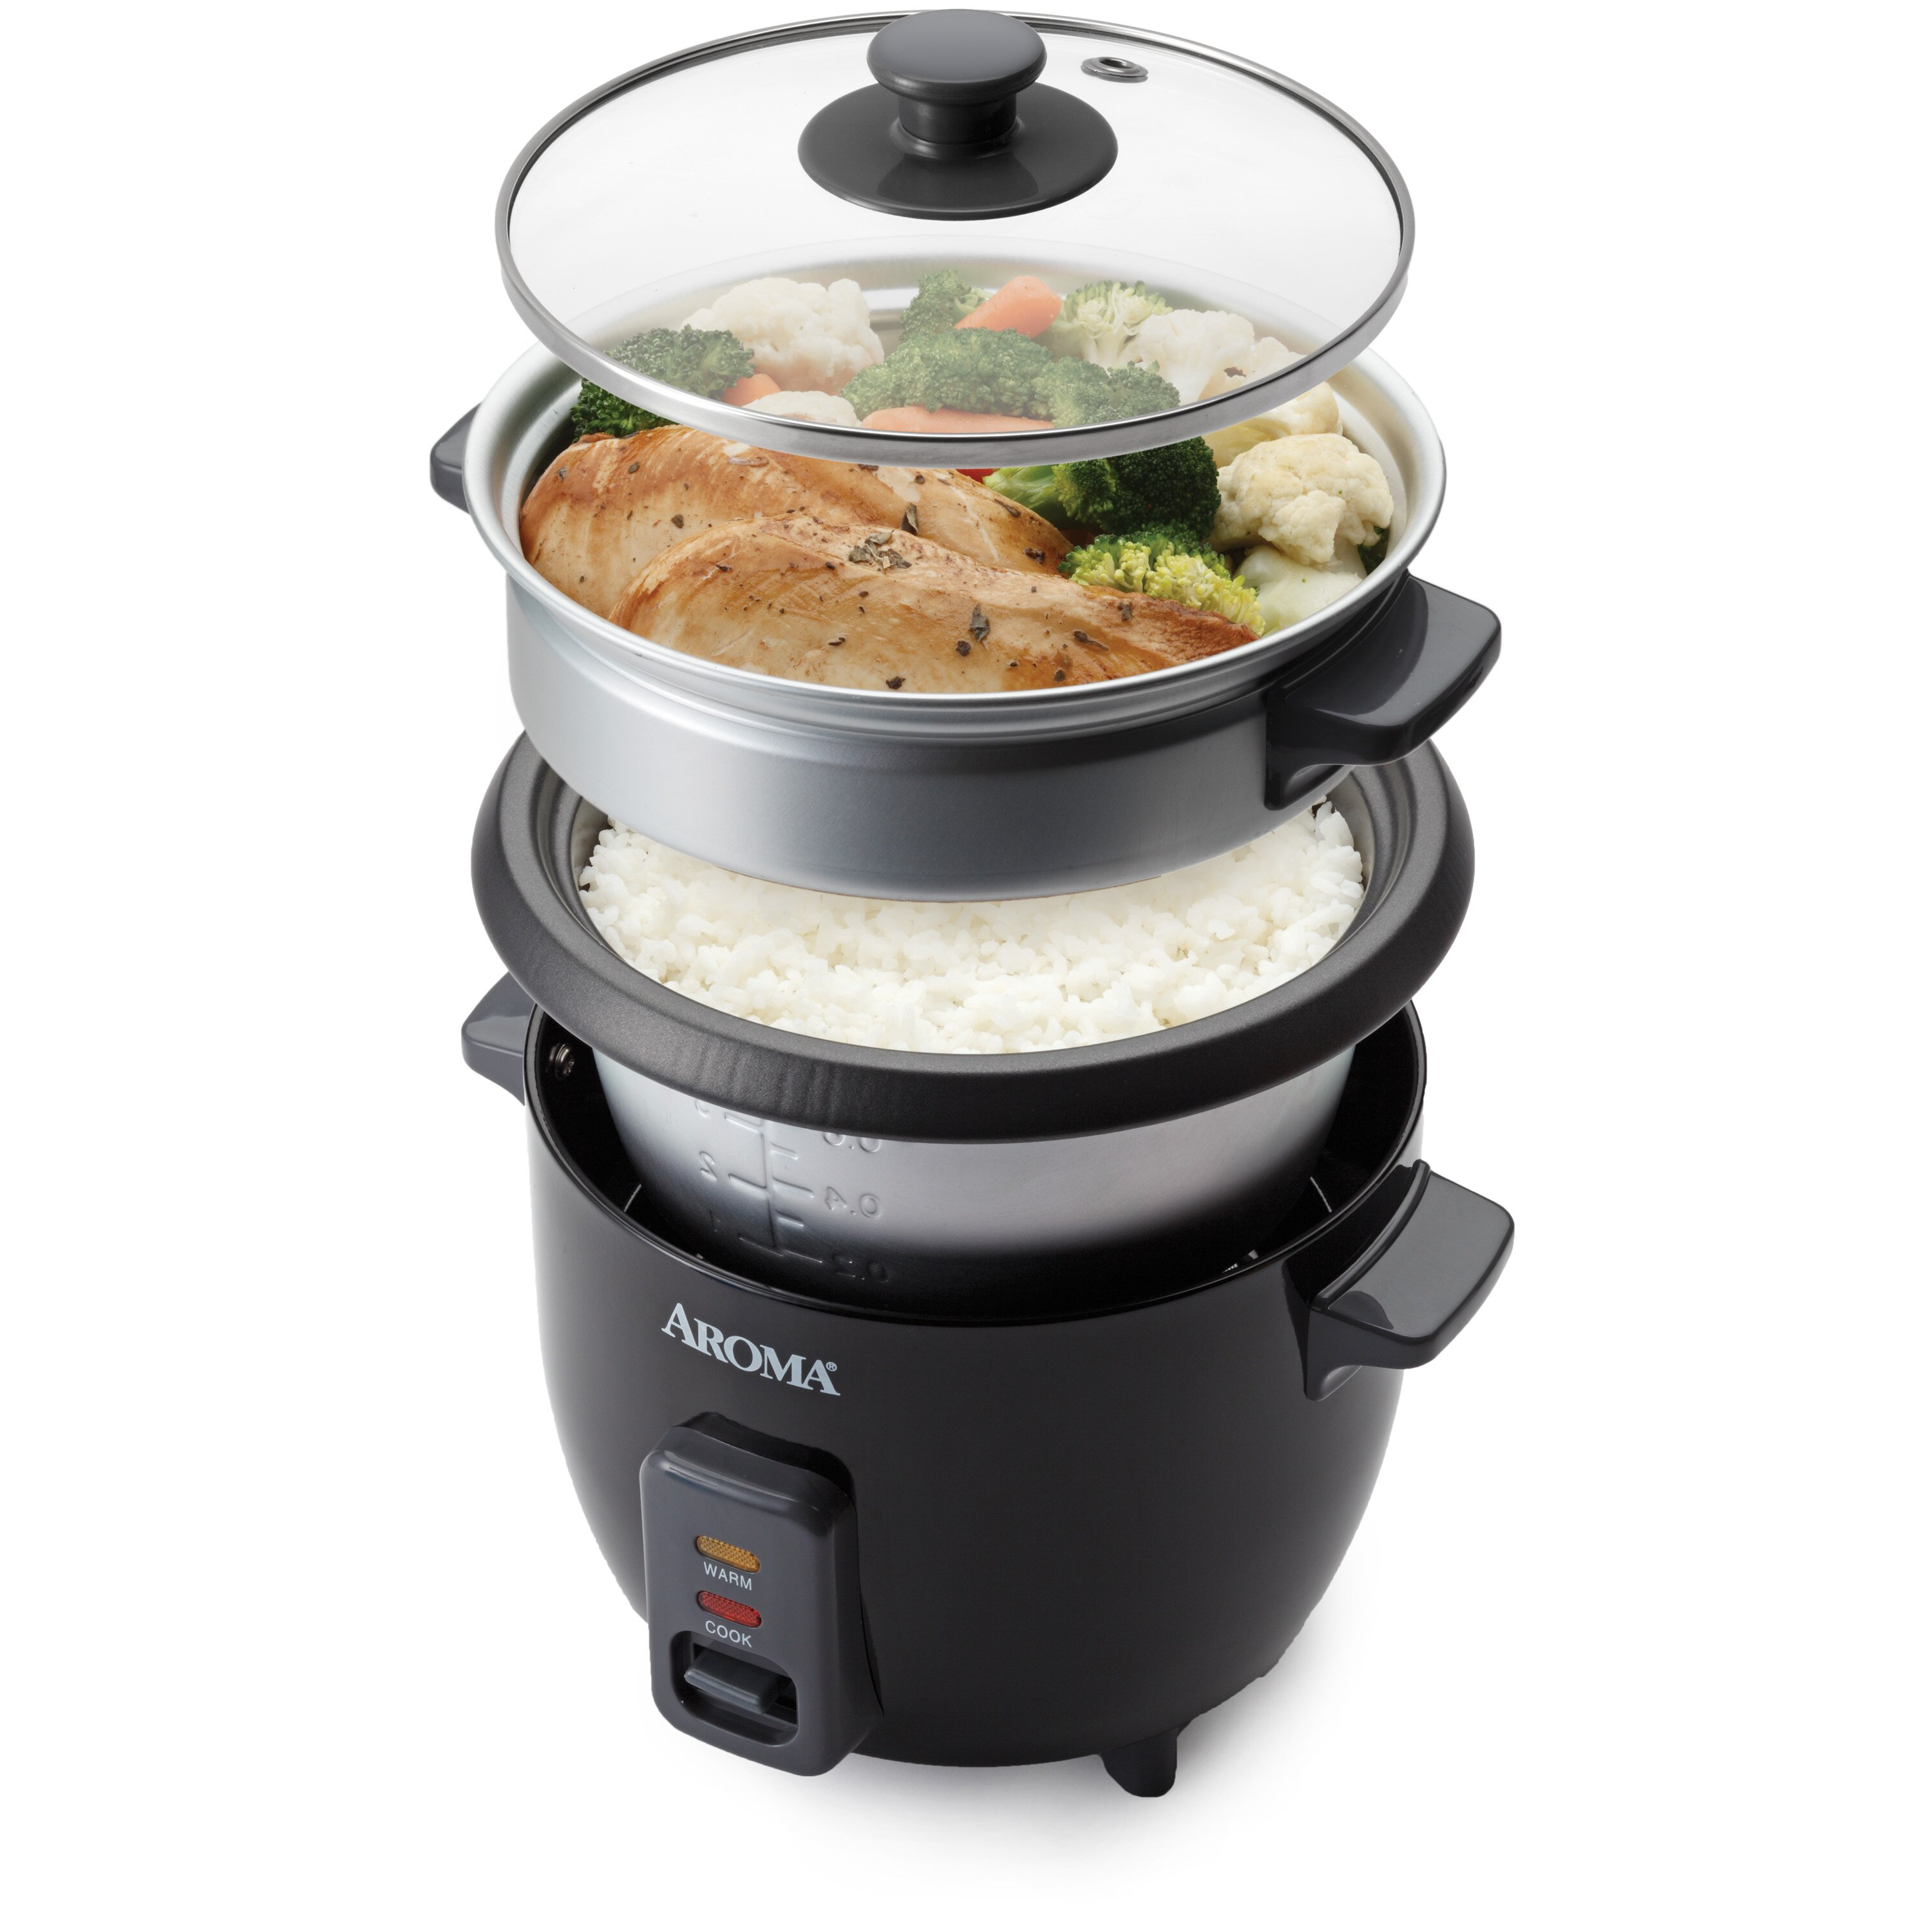 Aroma 6 Cup Rice Cooker Amp Reviews Wayfair